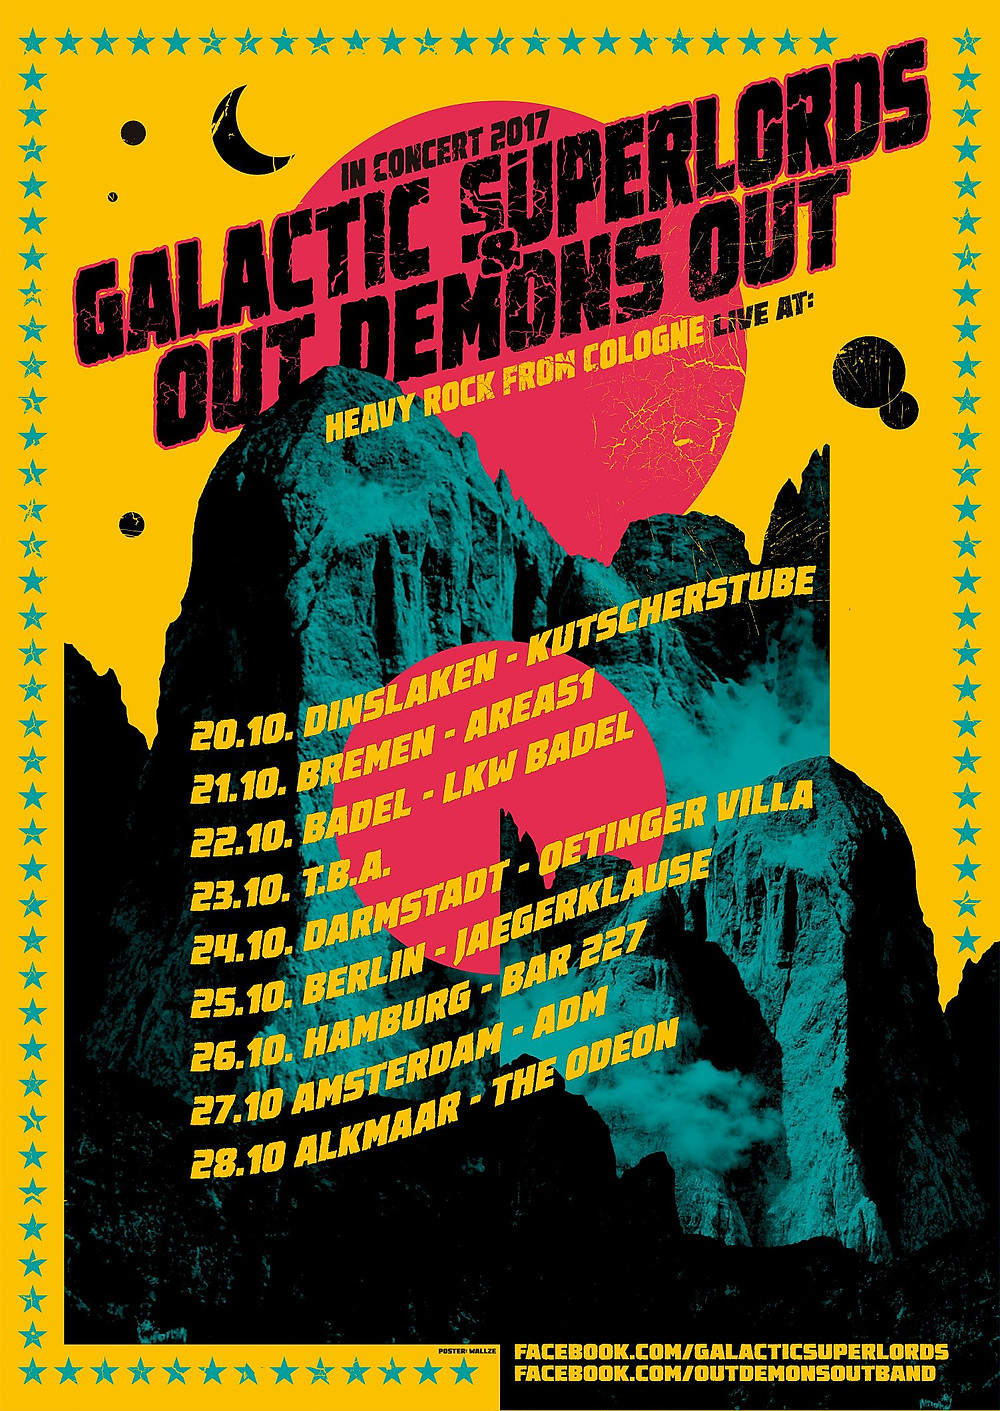 Galactic Superlords Tour